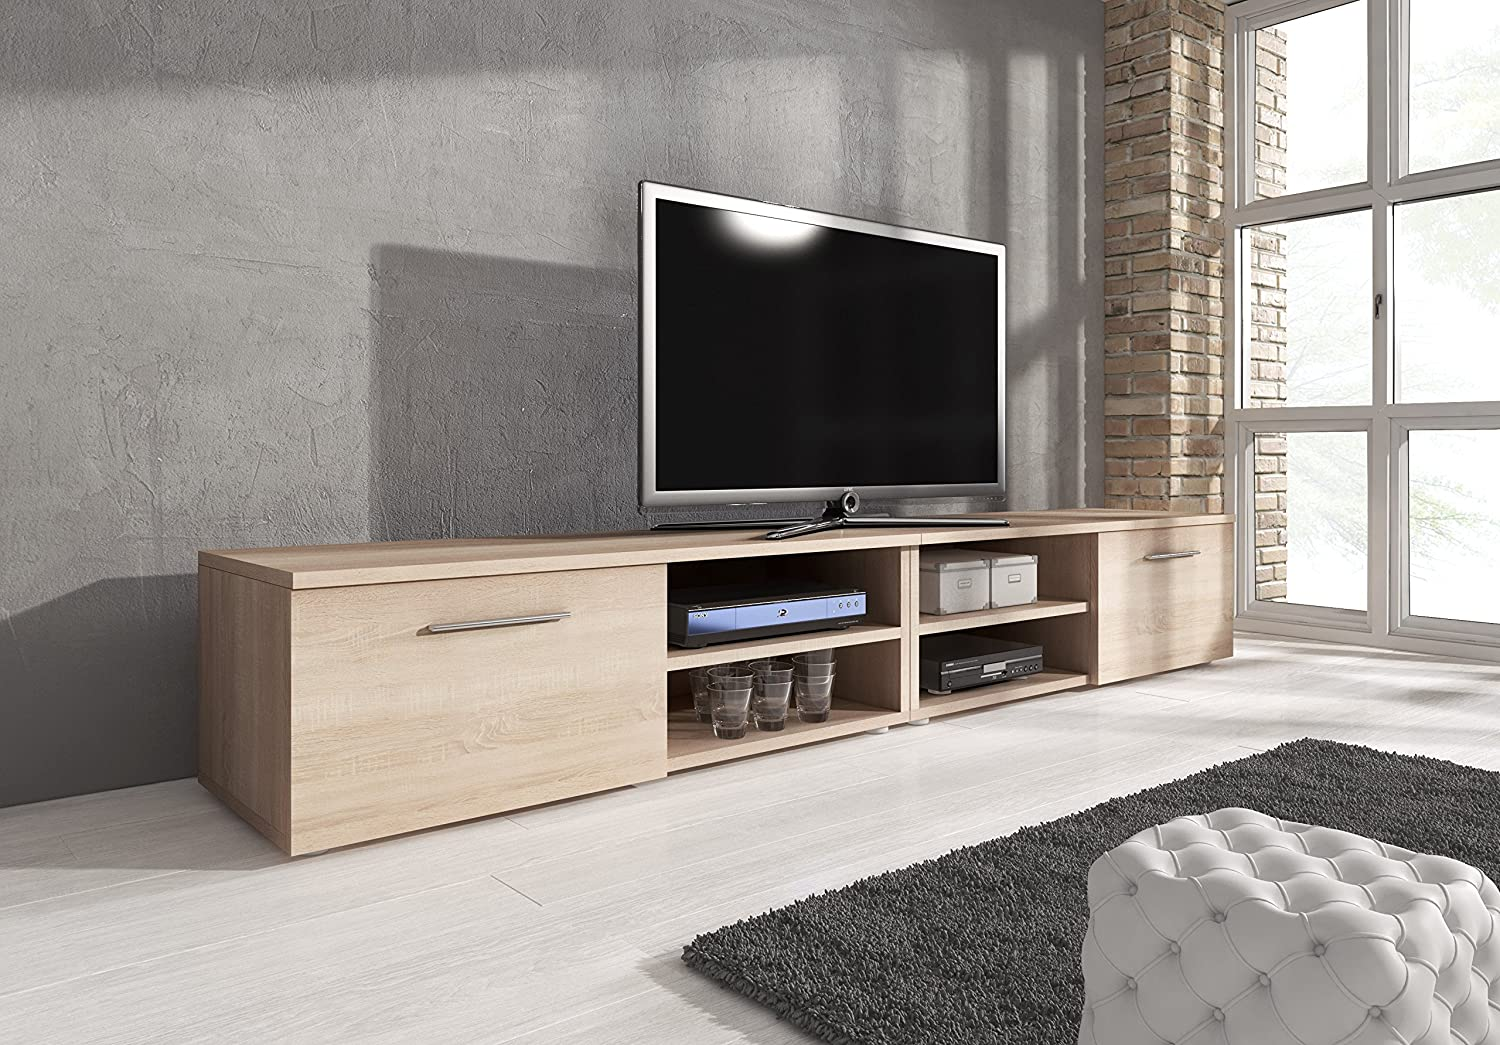 tv schrank eiche latest tv schrank eiche with tv schrank eiche fabulous tvlowboard baccio with. Black Bedroom Furniture Sets. Home Design Ideas